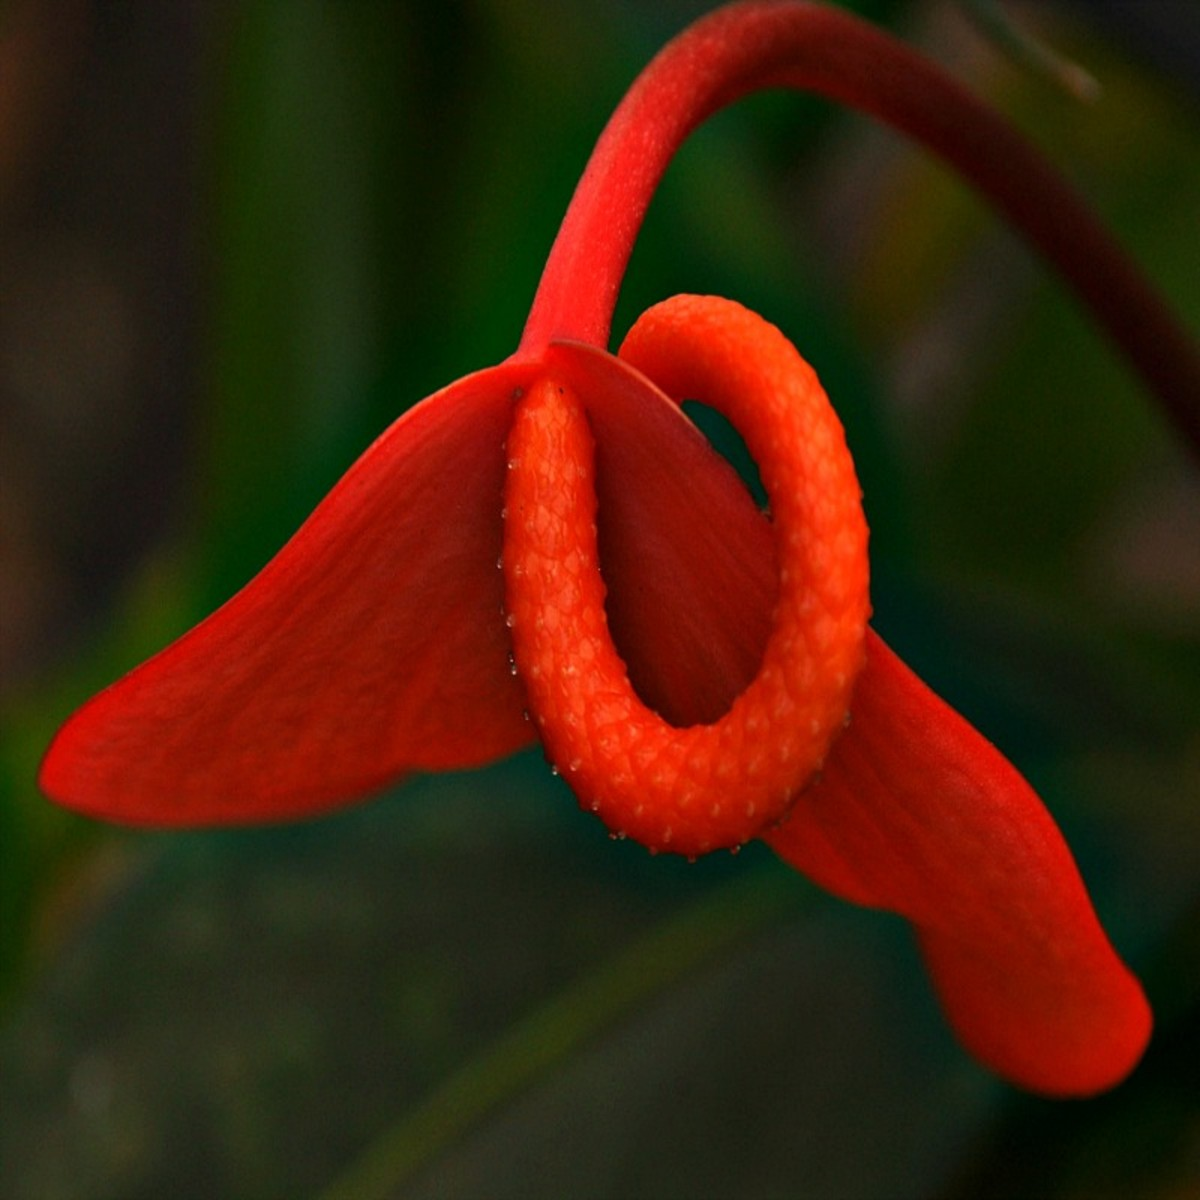 Flamingo Anthurium Flower (Anthurium Scherzerianum Flowering Habit)